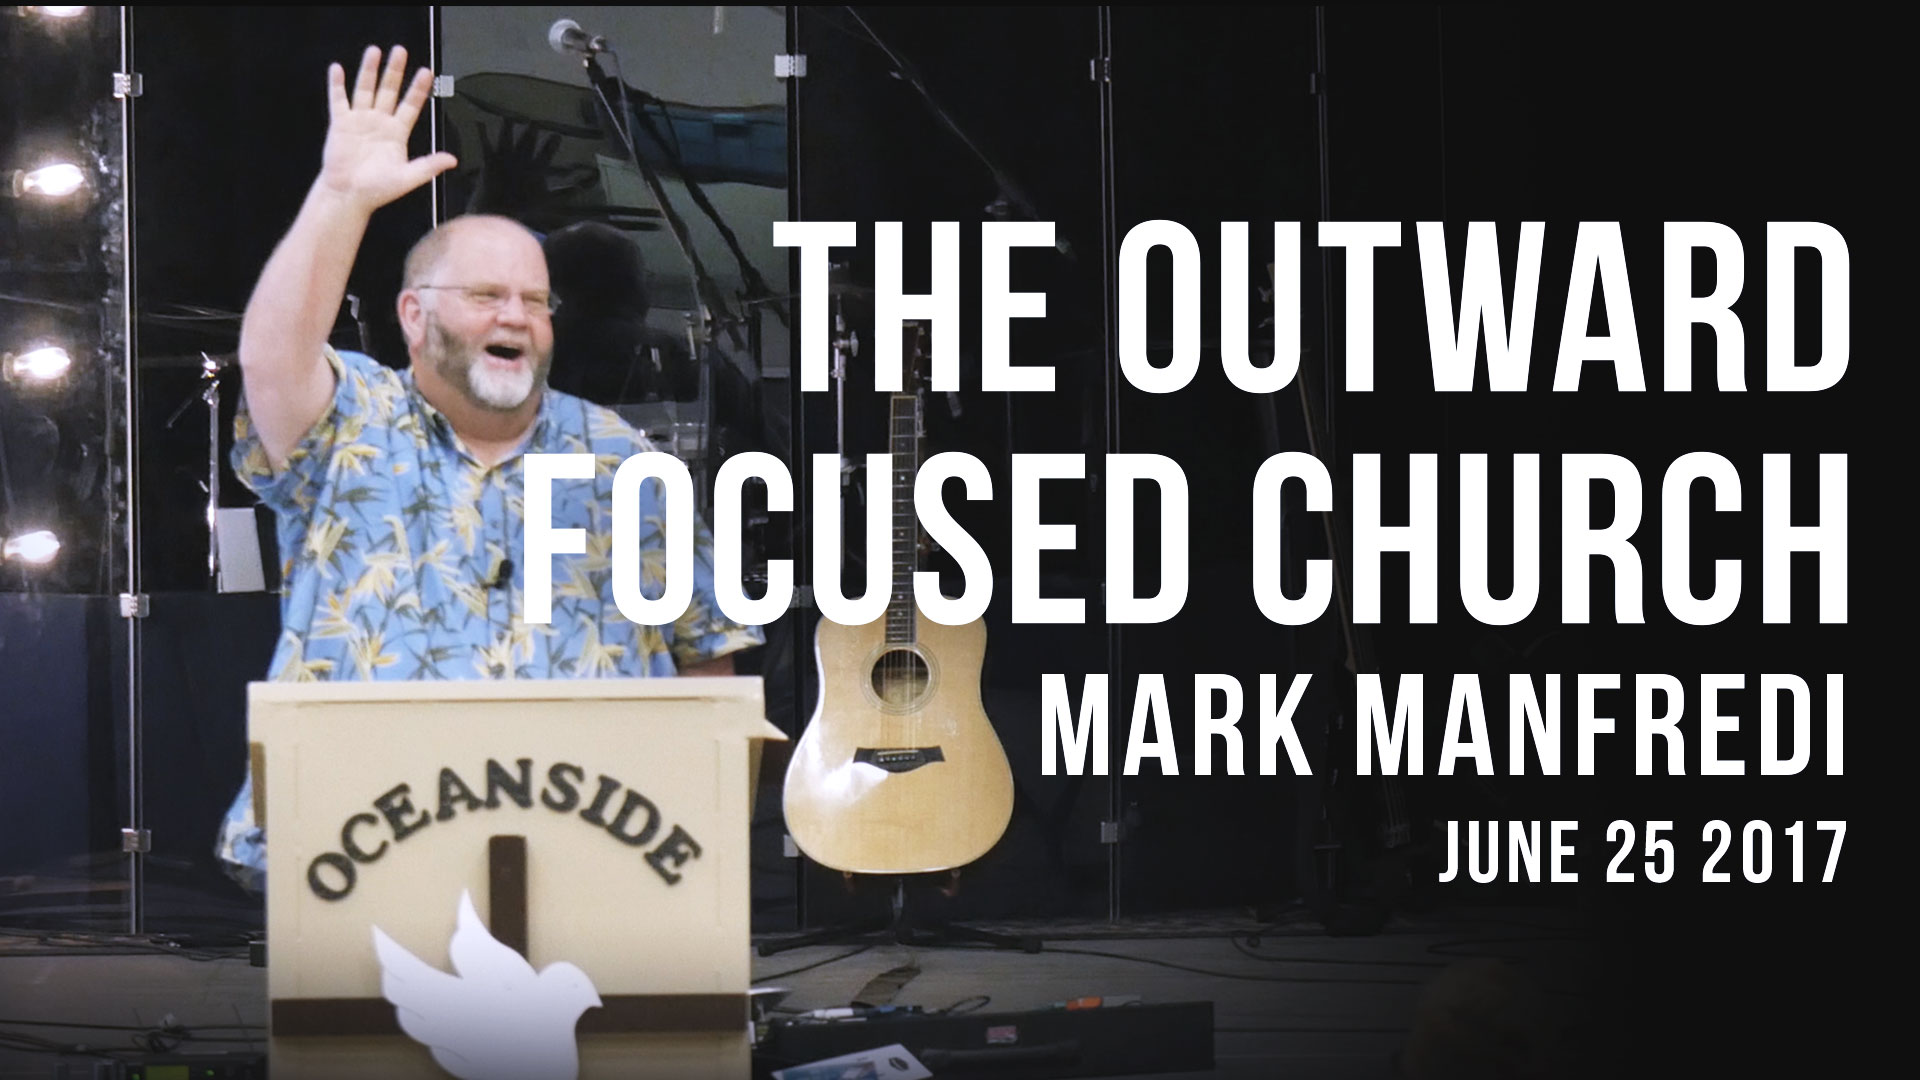 The Outward Focused Church